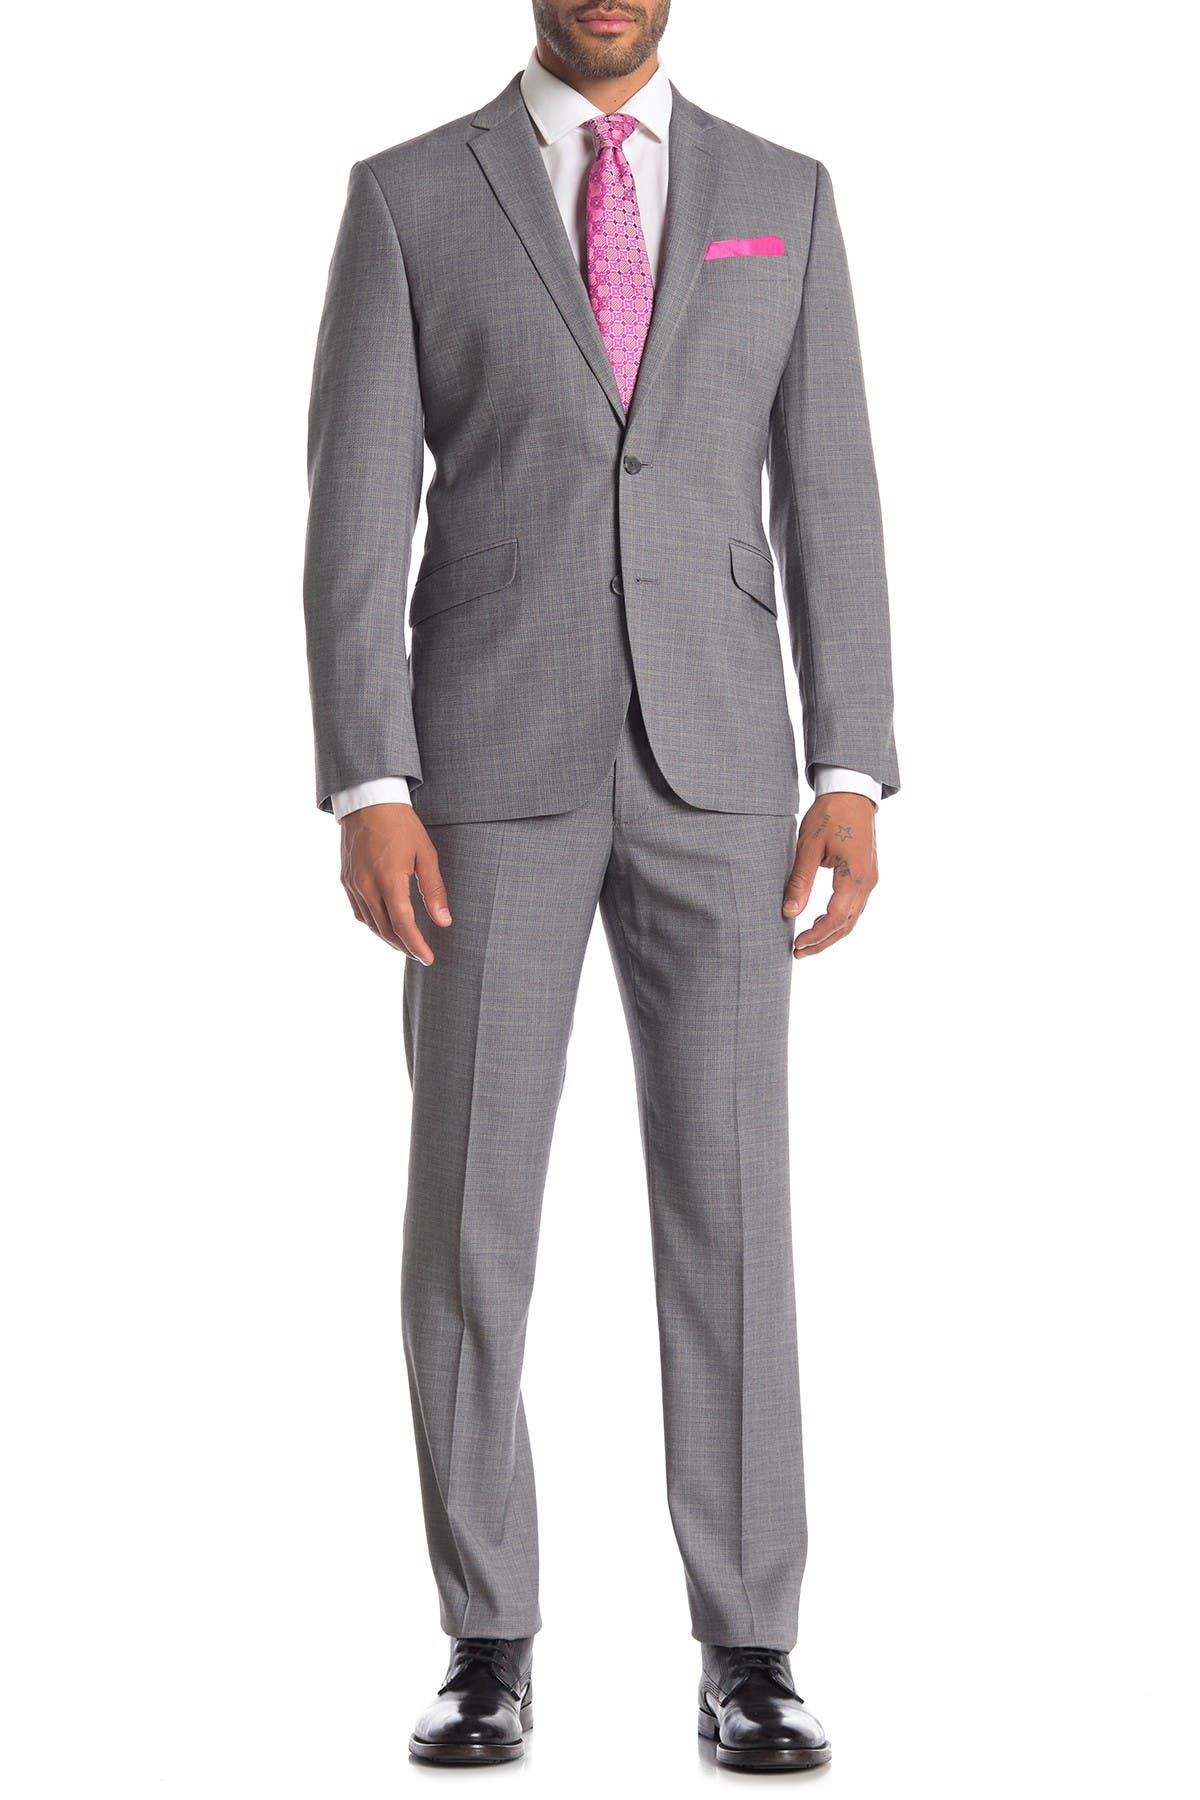 Image of Kenneth Cole Reaction Light Grey Plaid Techni-Cole Performance Slim Fit Suit